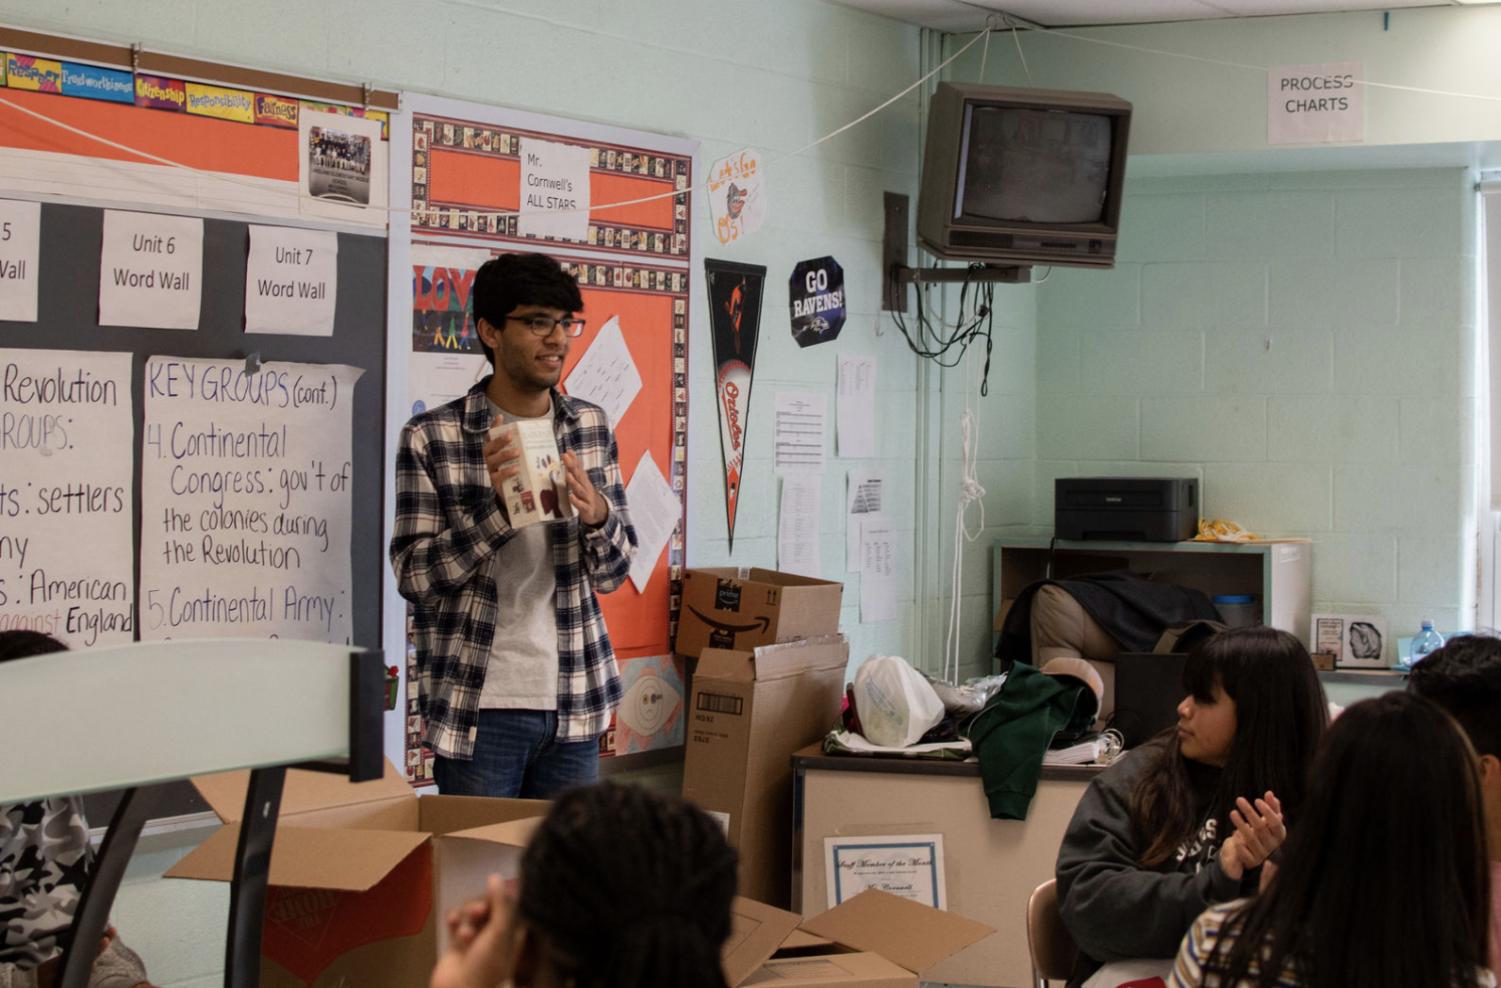 WCHS senior Robin Bali travels to Lakeland Elementary School Middle School in Baltimore, Md. to deliver books and other supplies. In the photo, Bali is giving a presentation to students that attend this school and is extremely grateful for their reactions.